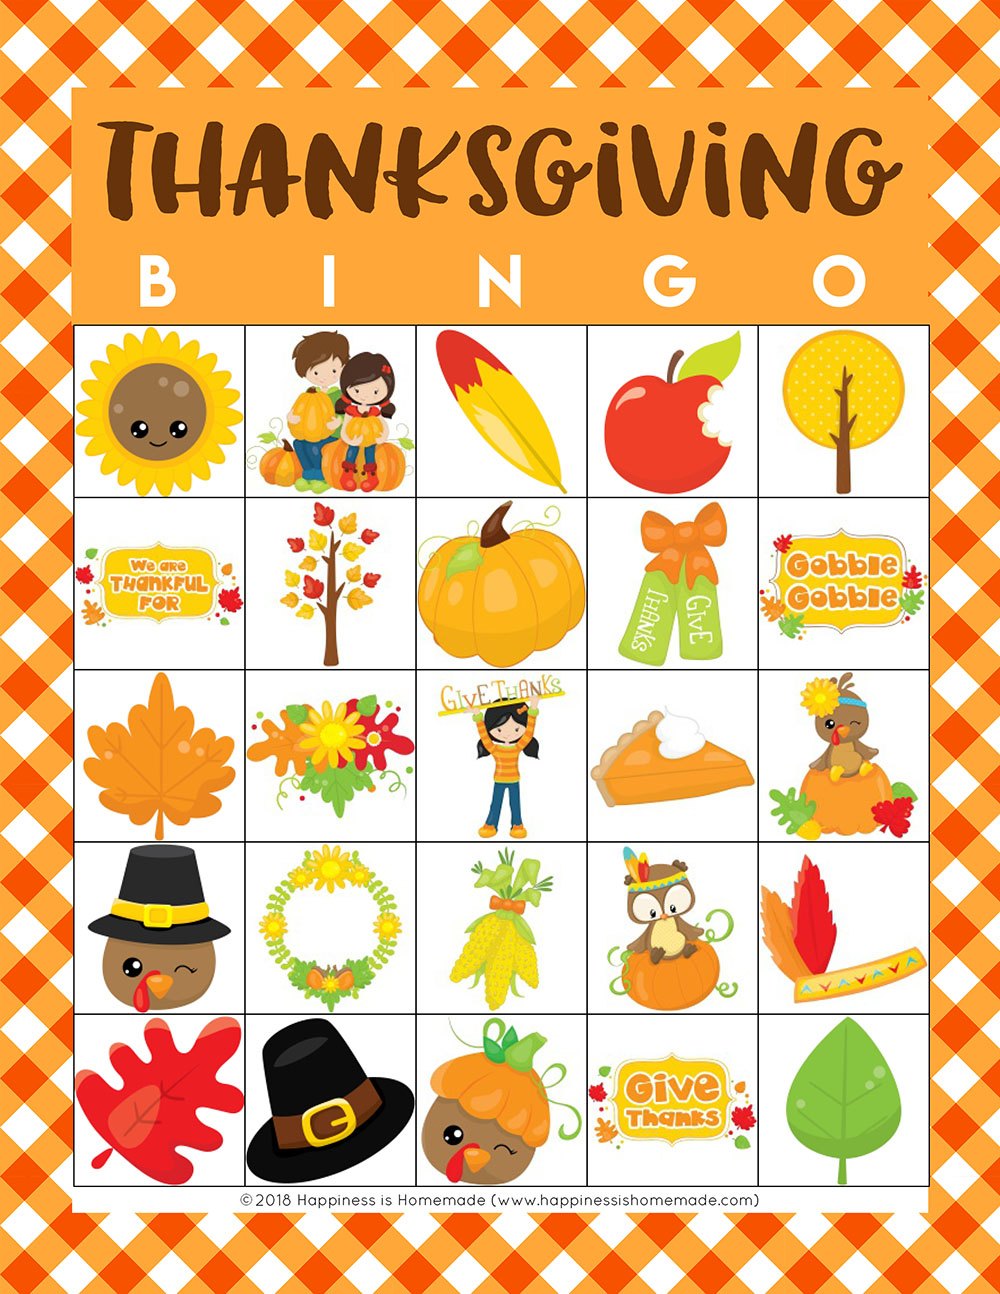 picture regarding Thanksgiving Bingo Printable known as Free of charge Printable Thanksgiving Bingo Playing cards - Contentment is Home made